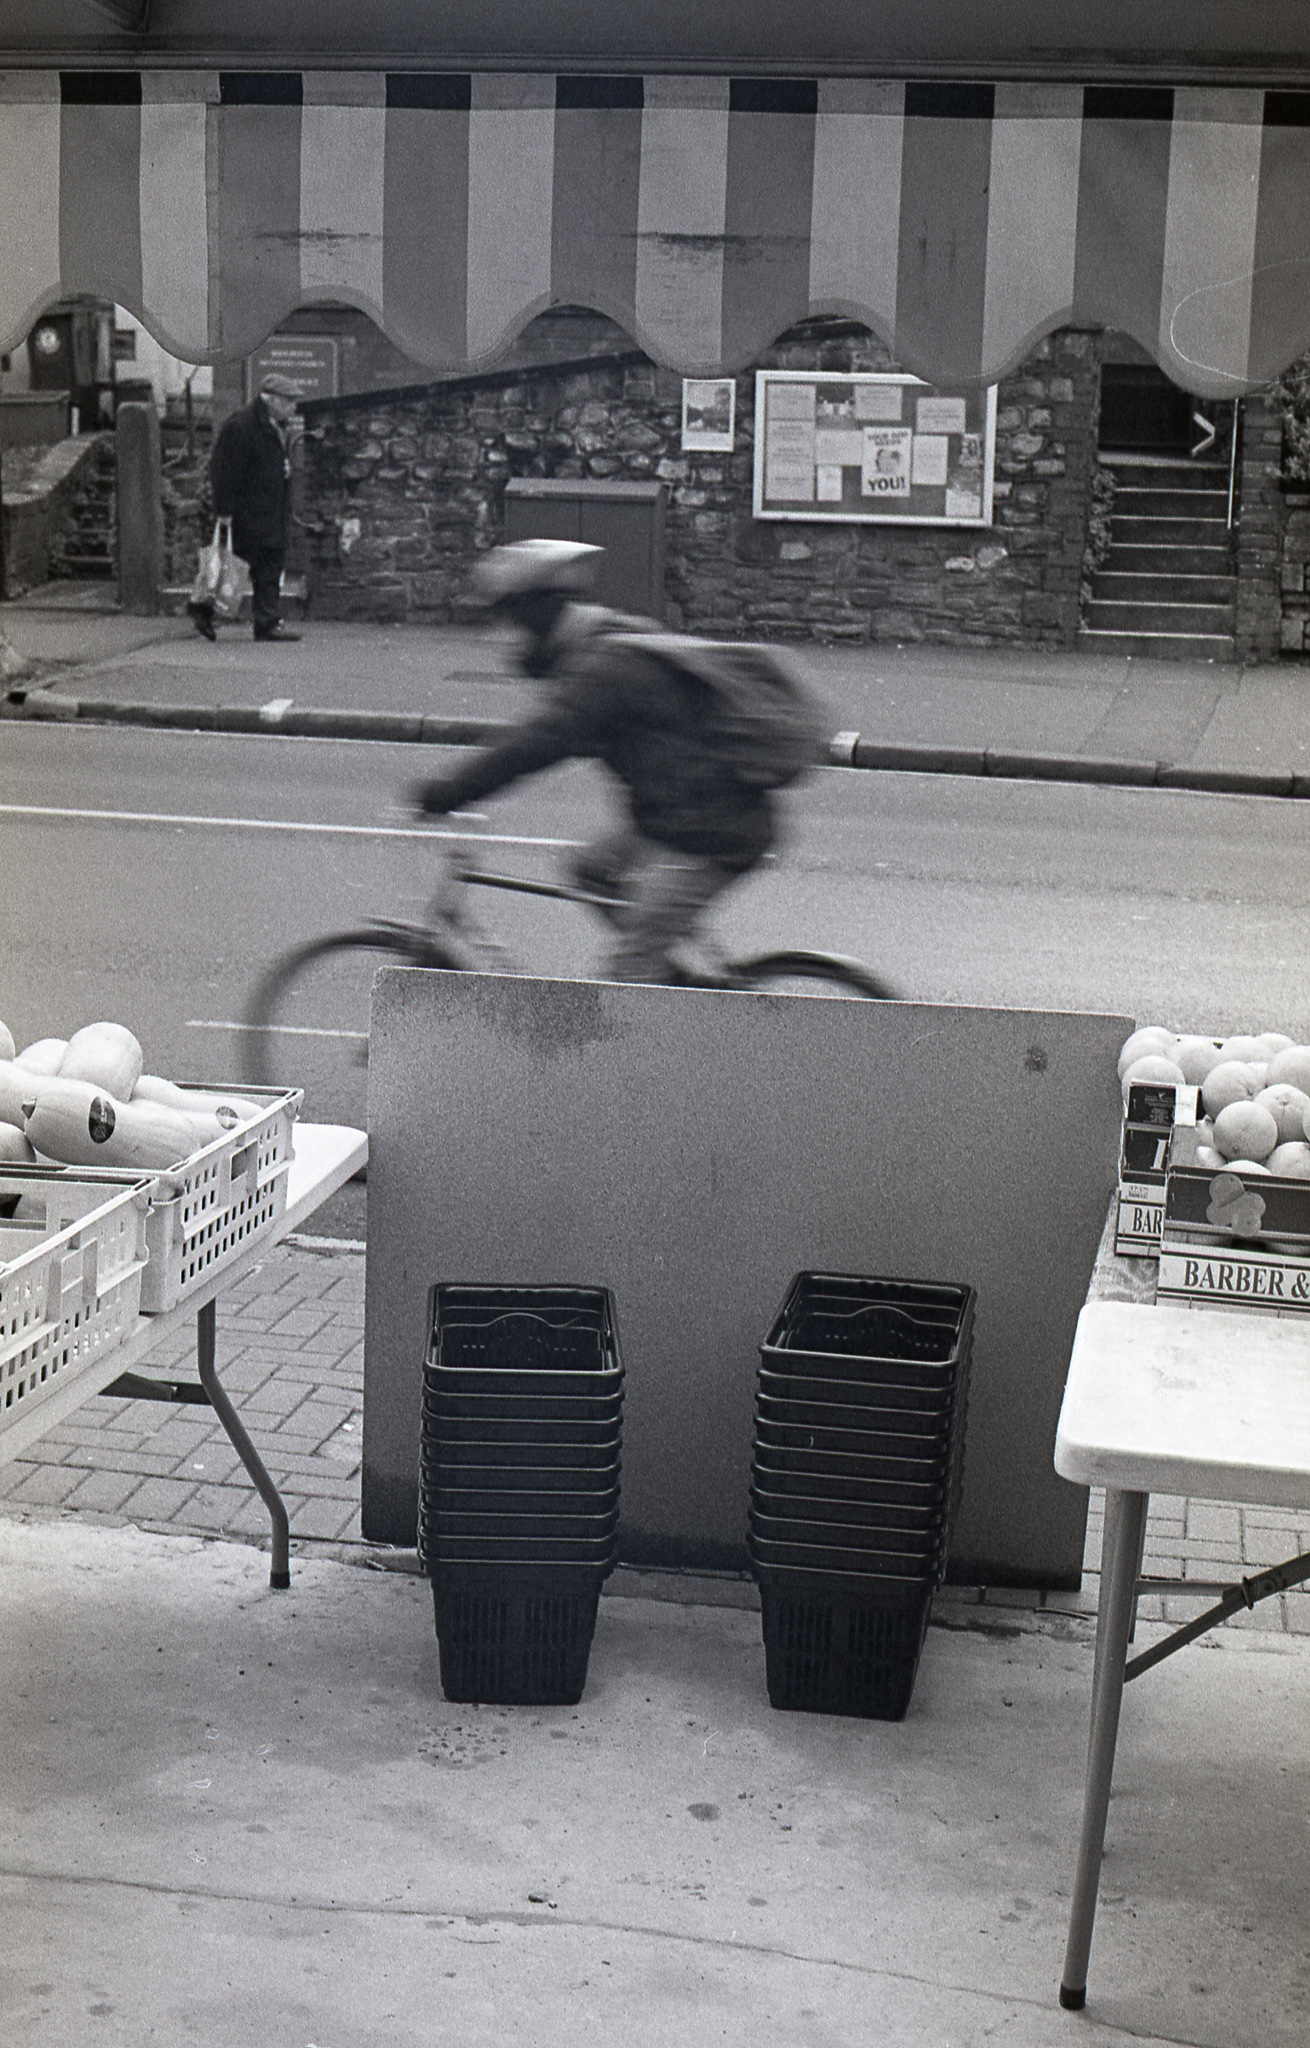 shopping baskets and fast moving cyclist with a person walking slowly in the background